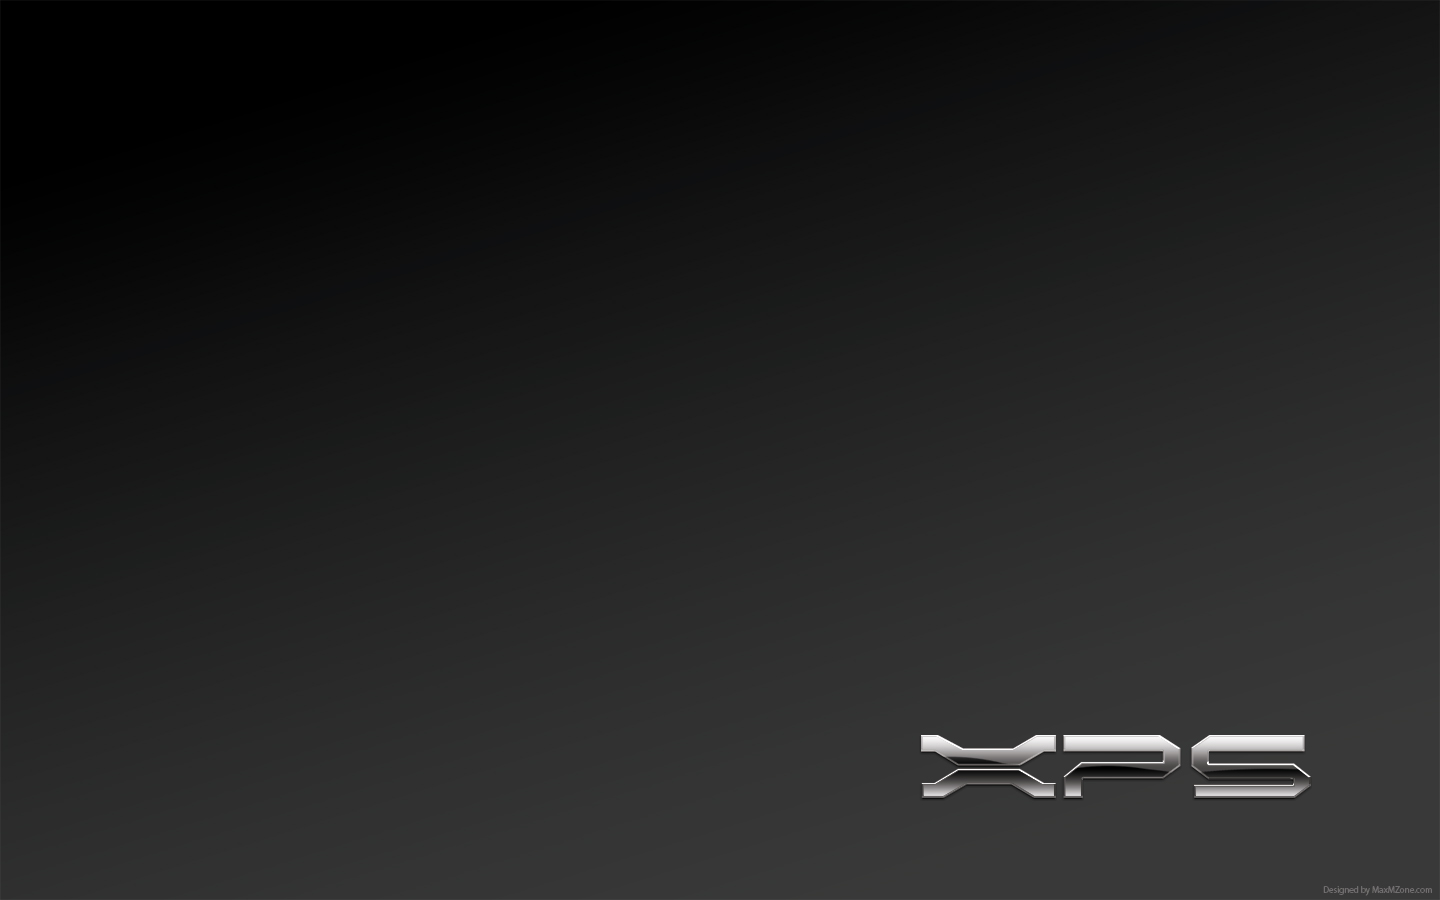 ... XPS Wallpaper Black and White by mmz